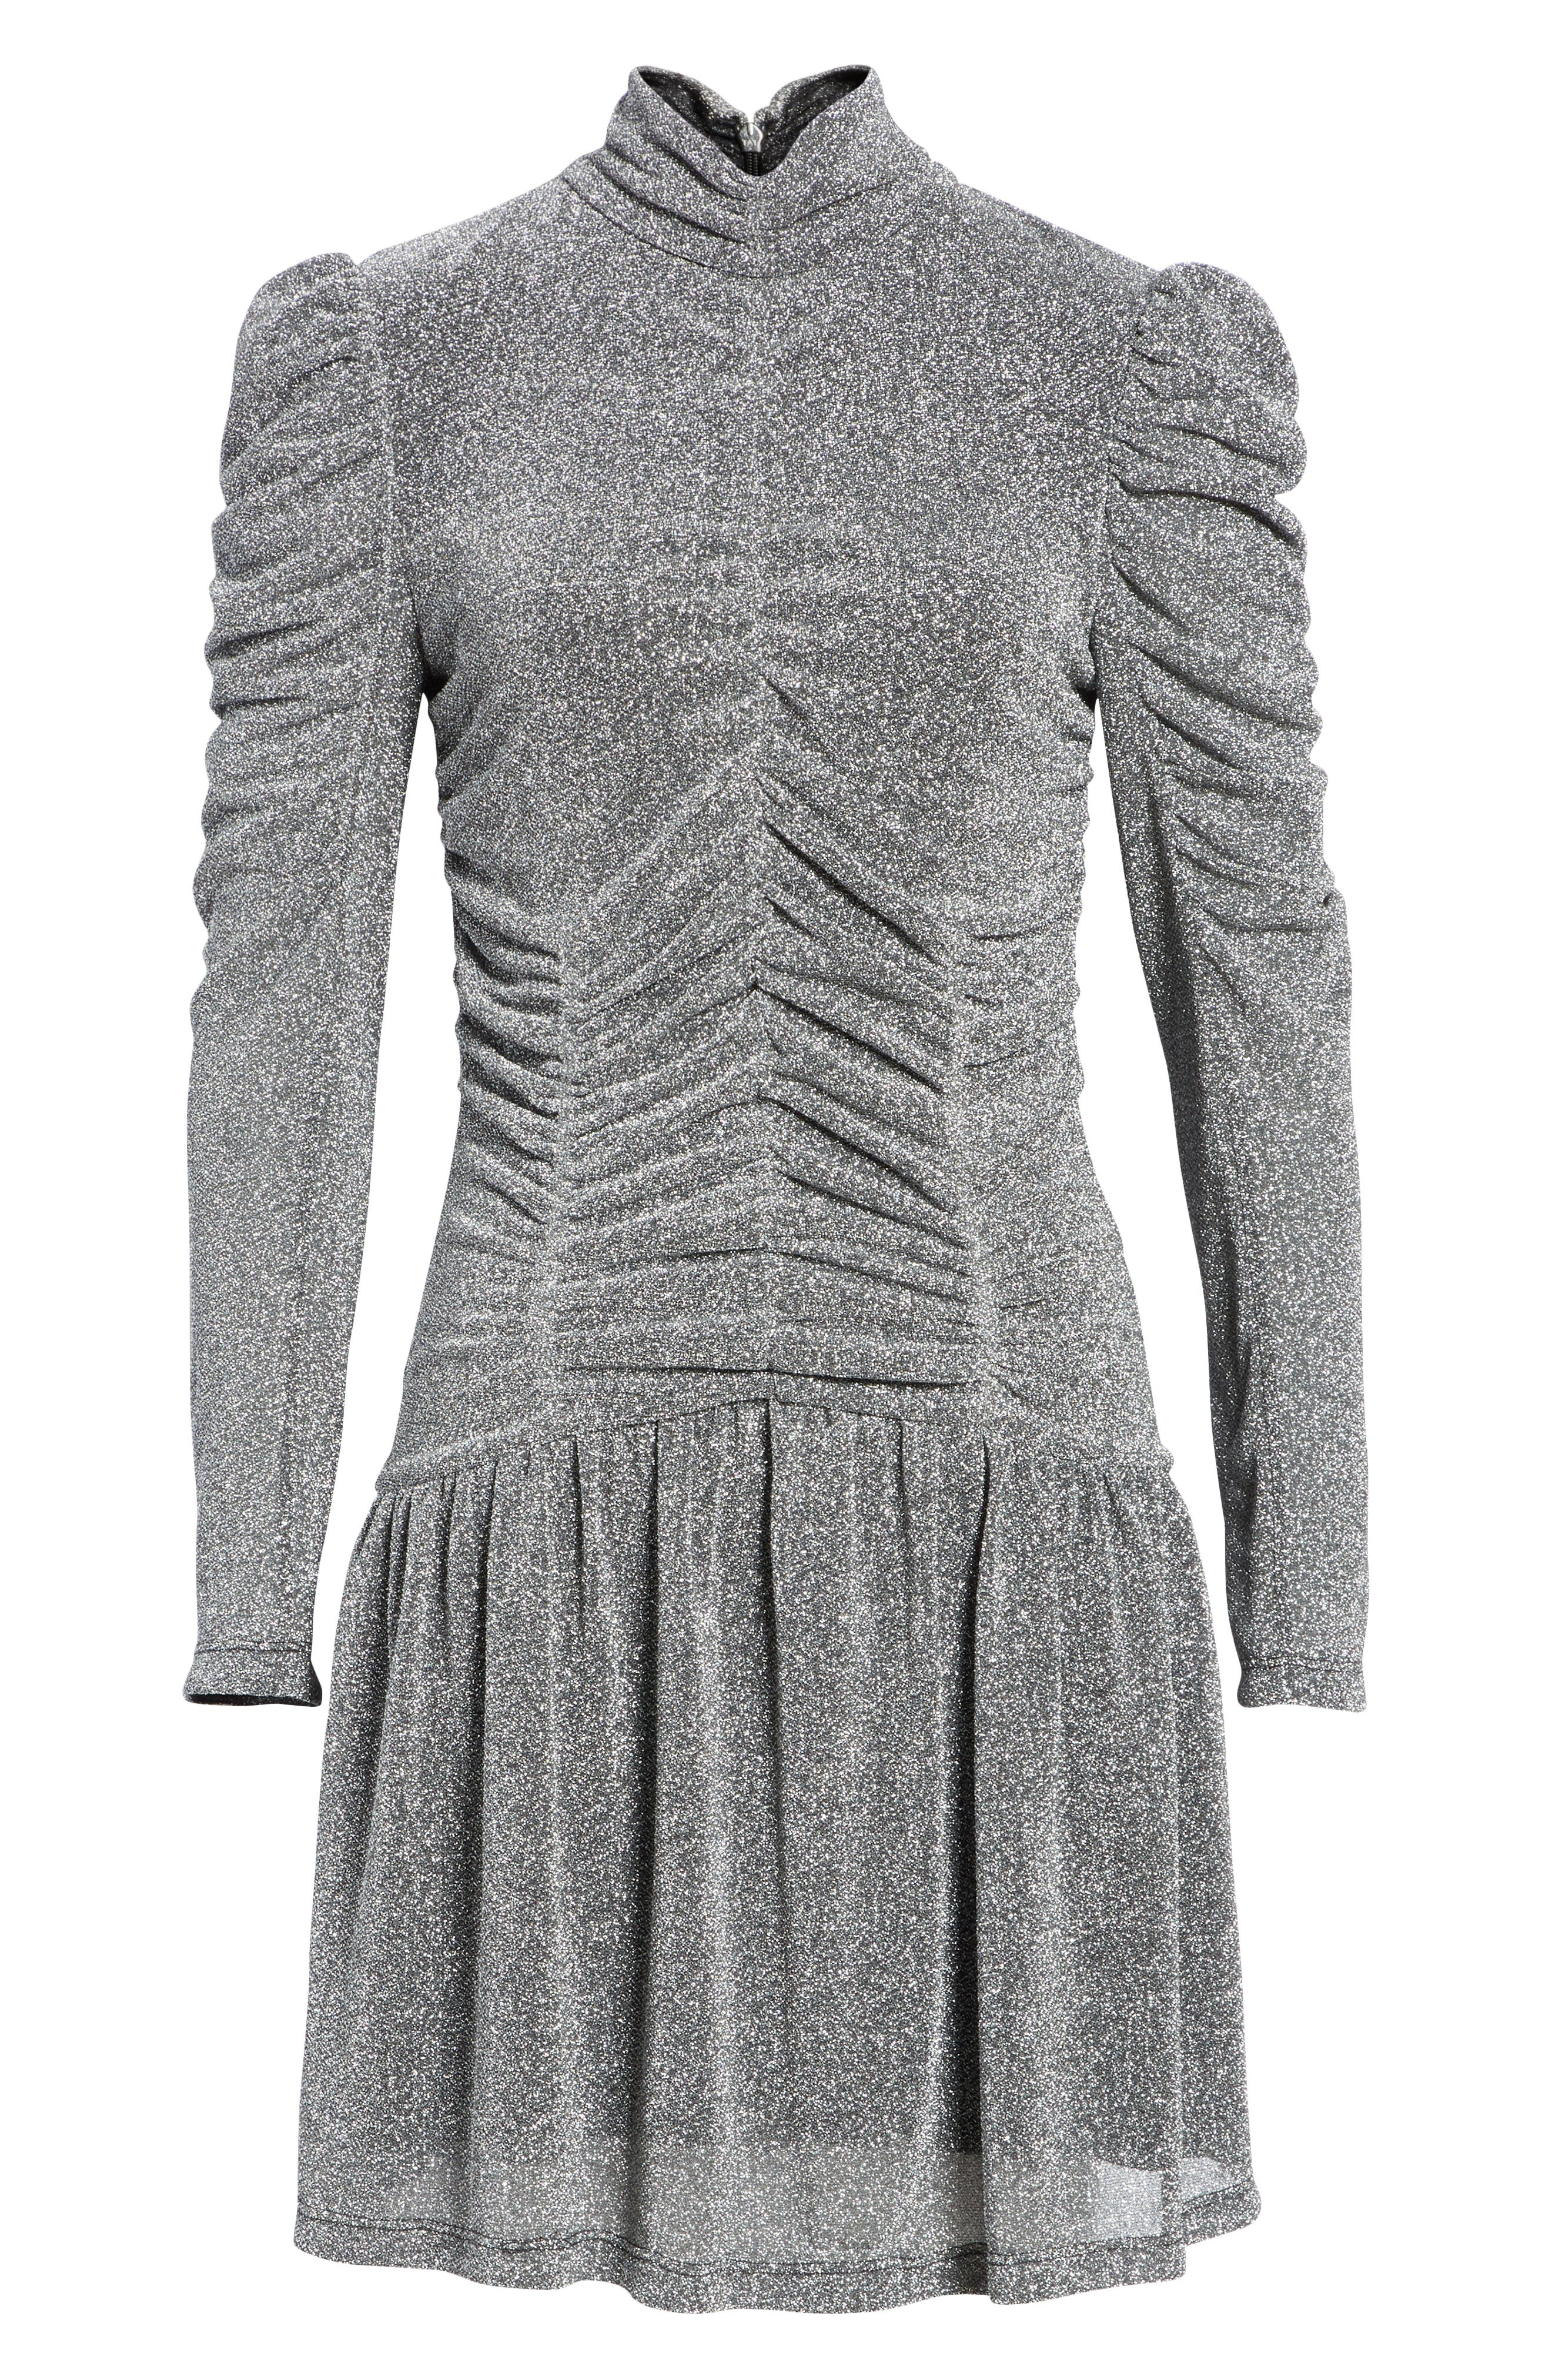 REBECCA TAYLOR,                             Gathered Metallic Jersey Dress,                             Alternate thumbnail 6, color,                             043